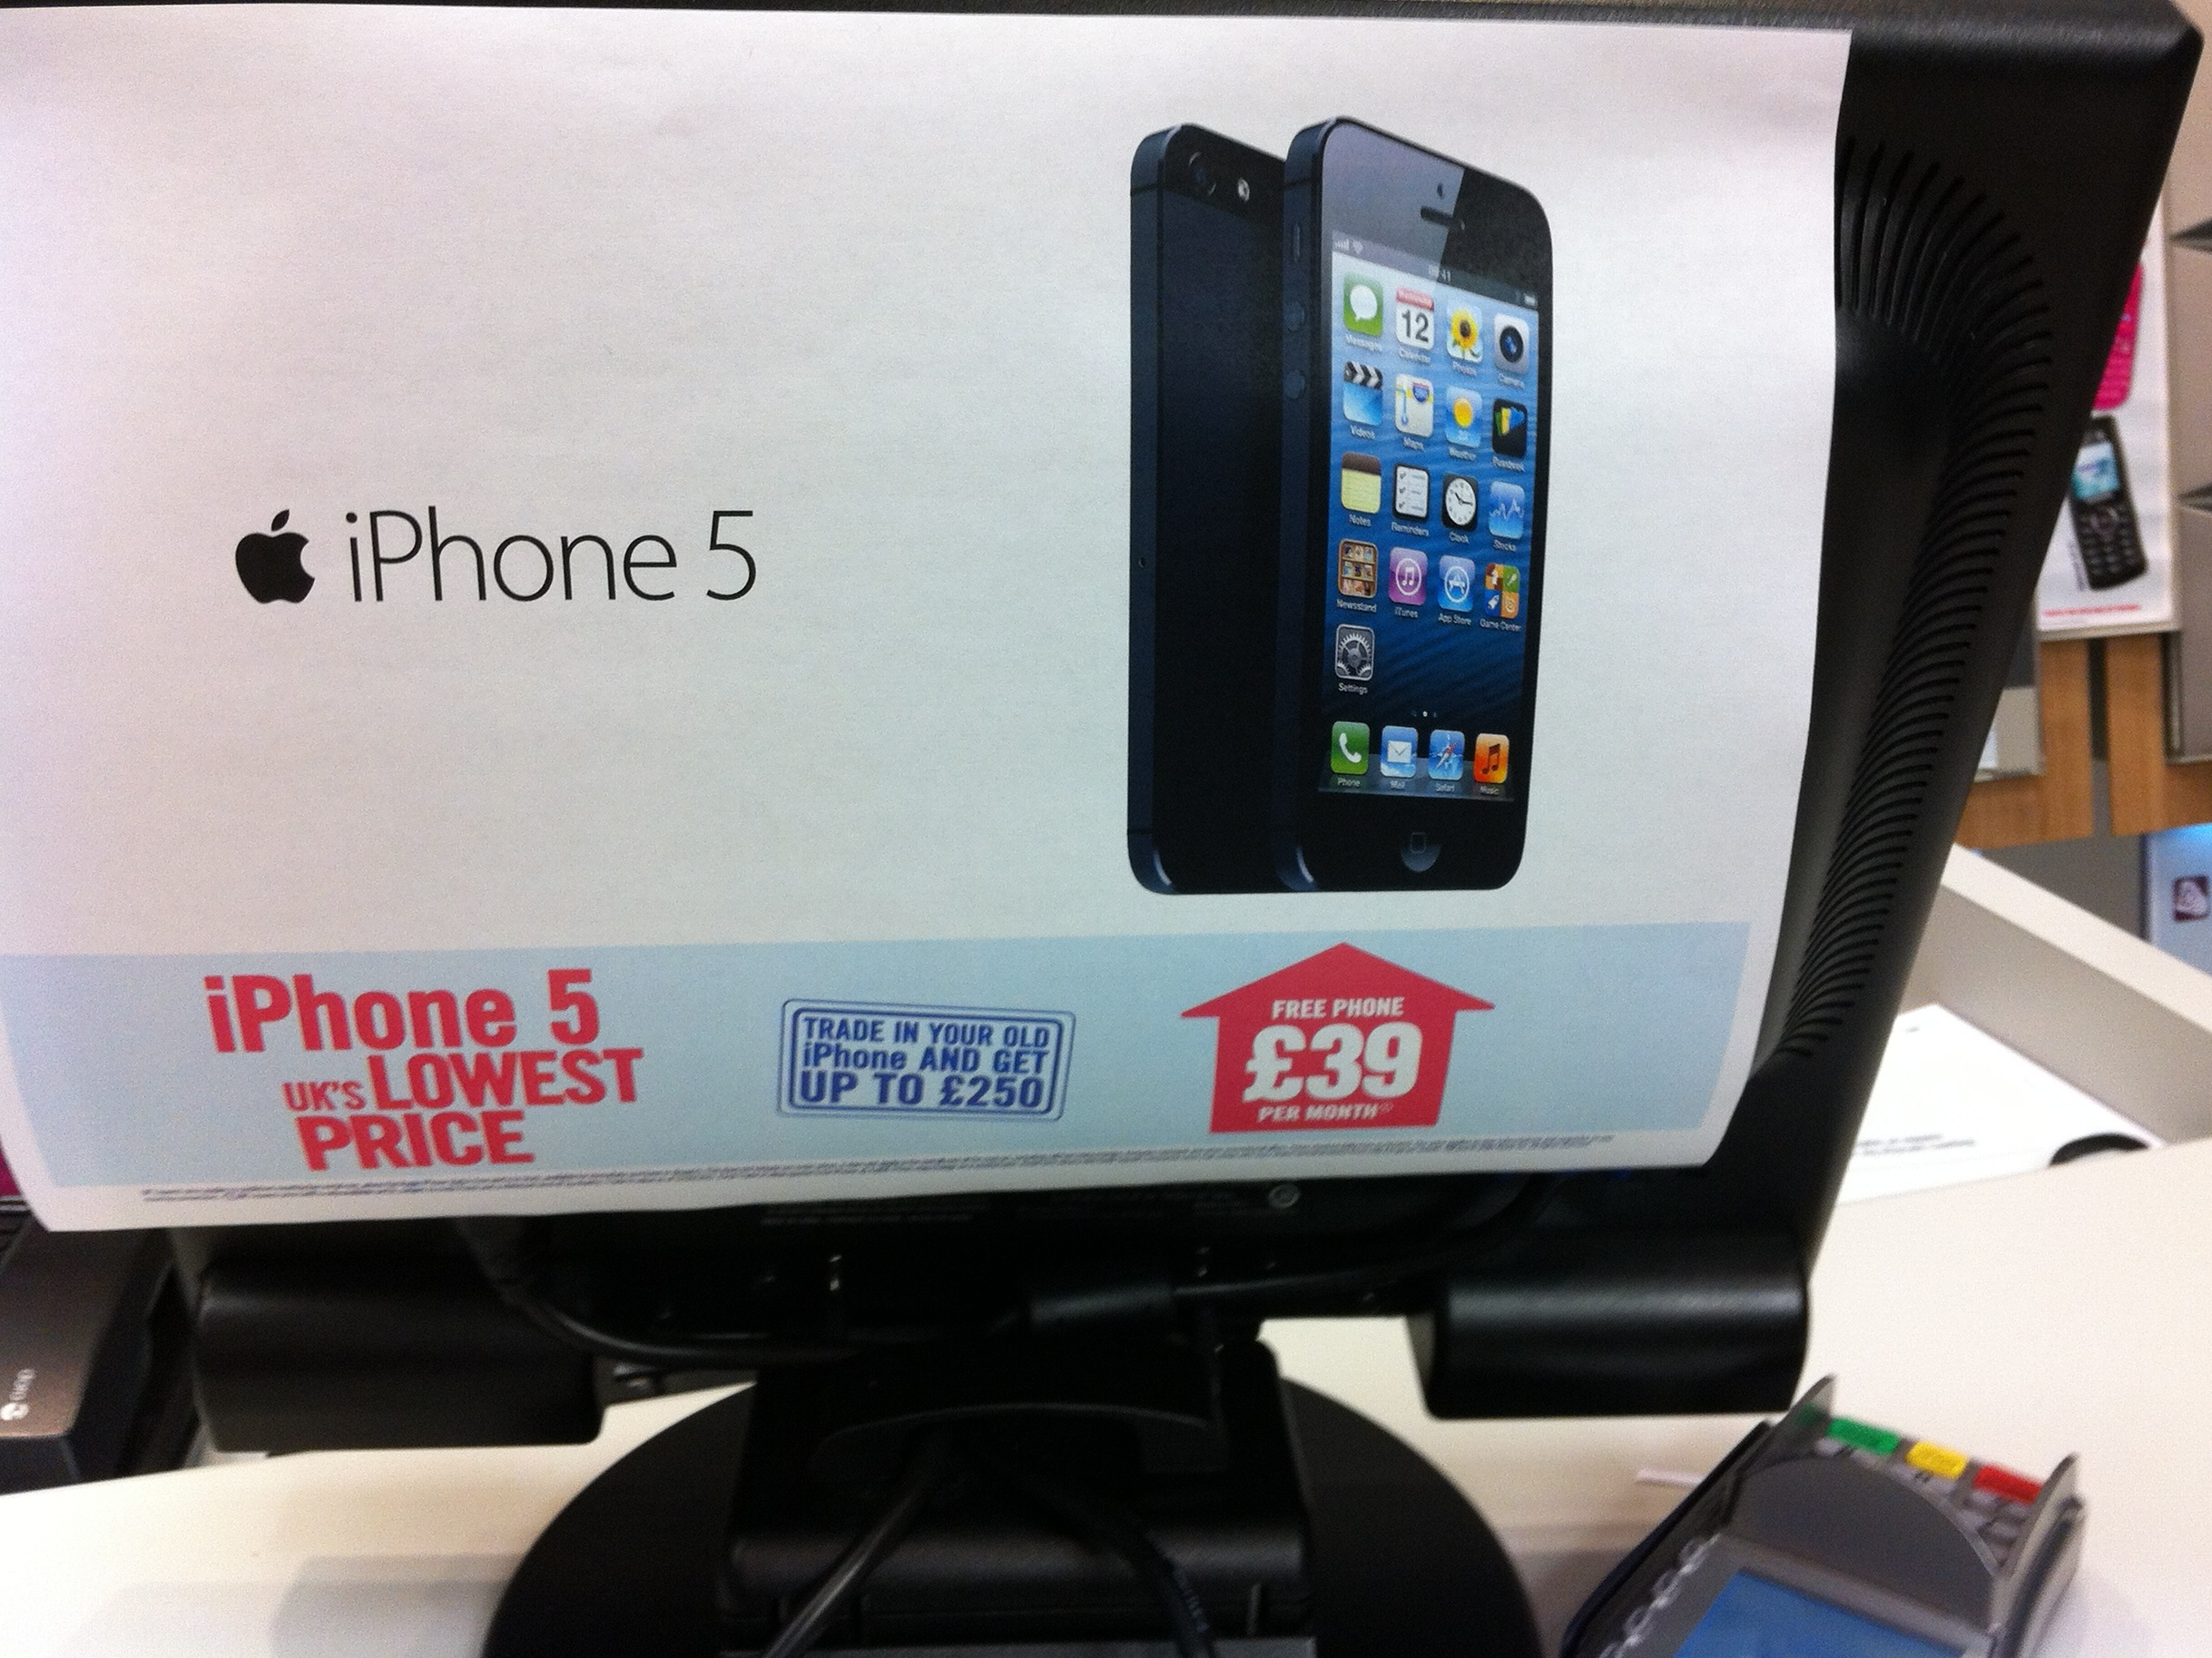 UK's cheapest iPhone 5 price